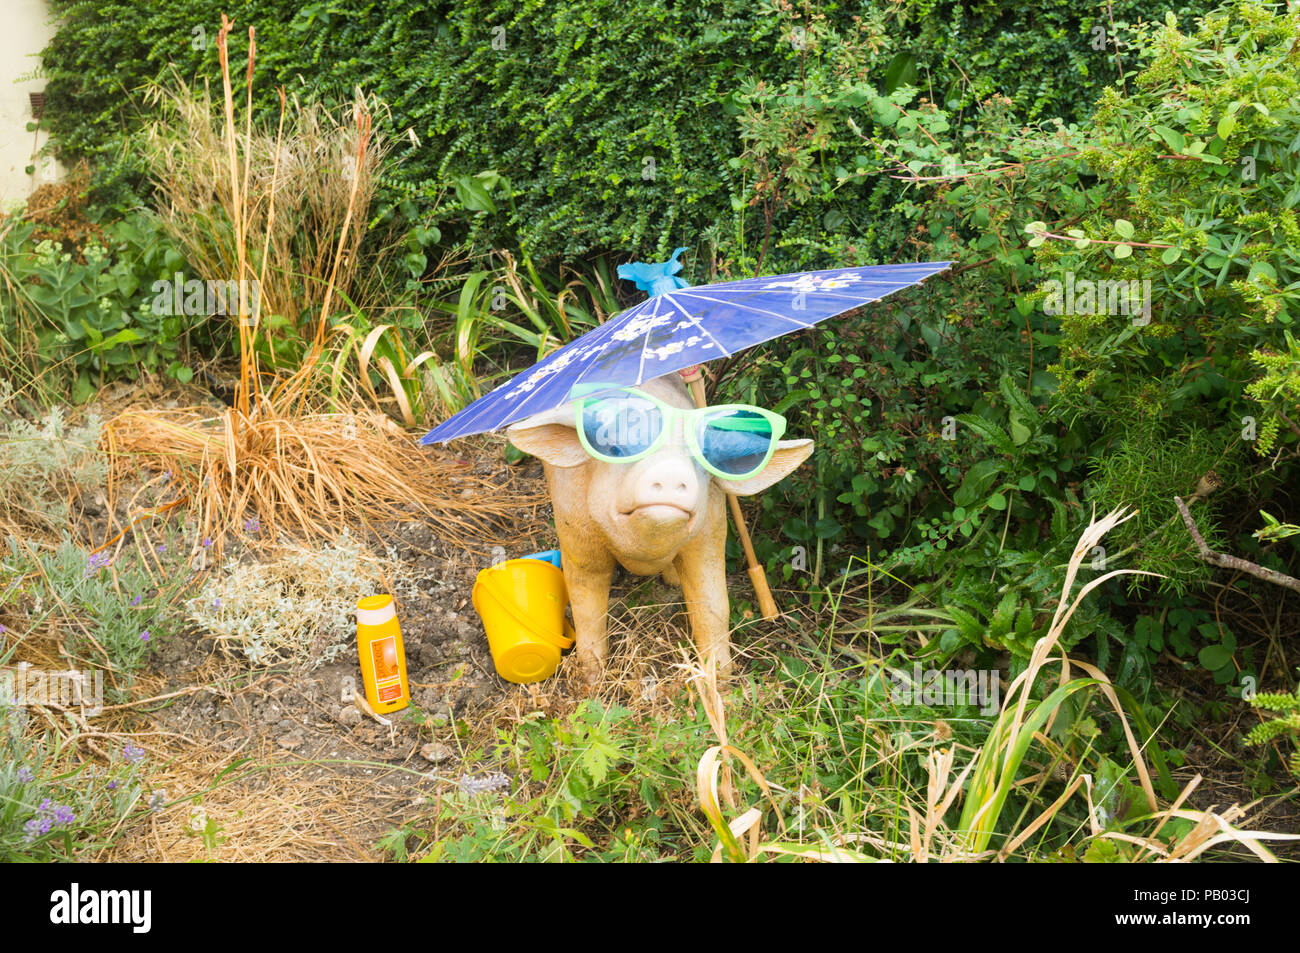 Model pig with suncream, sunglasses, water and shade in a front garden, UK weather - Stock Image